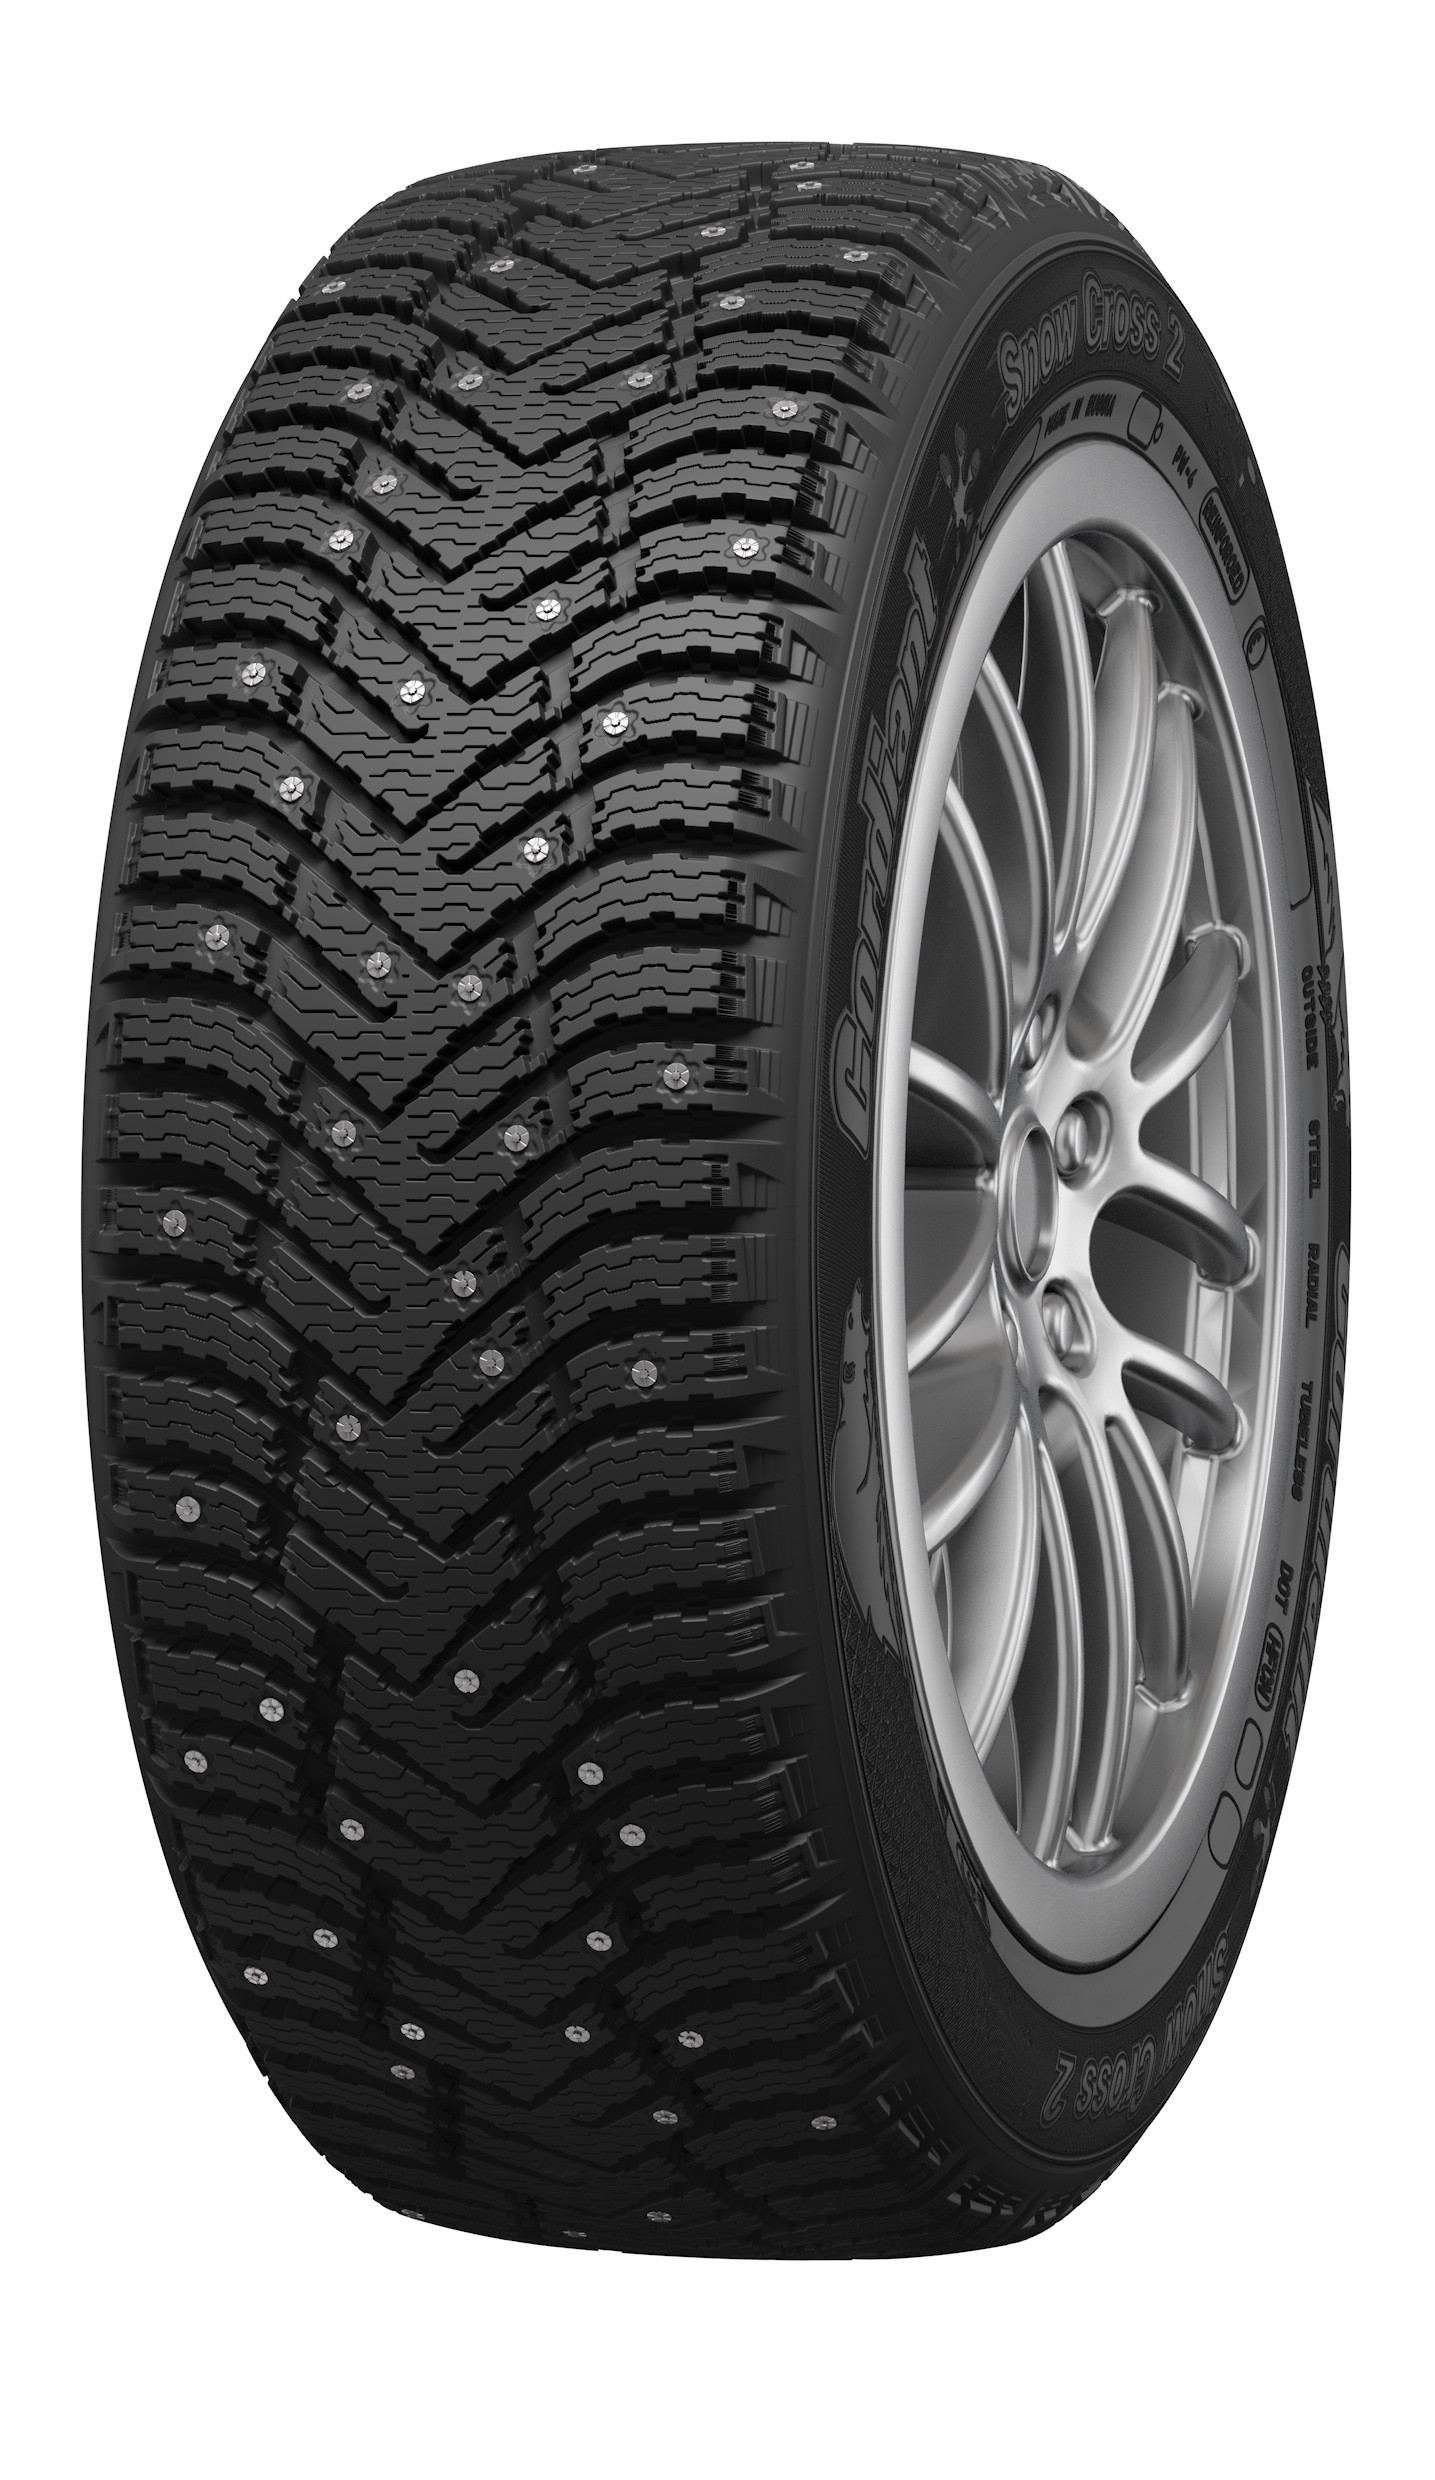 Cordiant Snow Cross 2 185/65 R14 90T